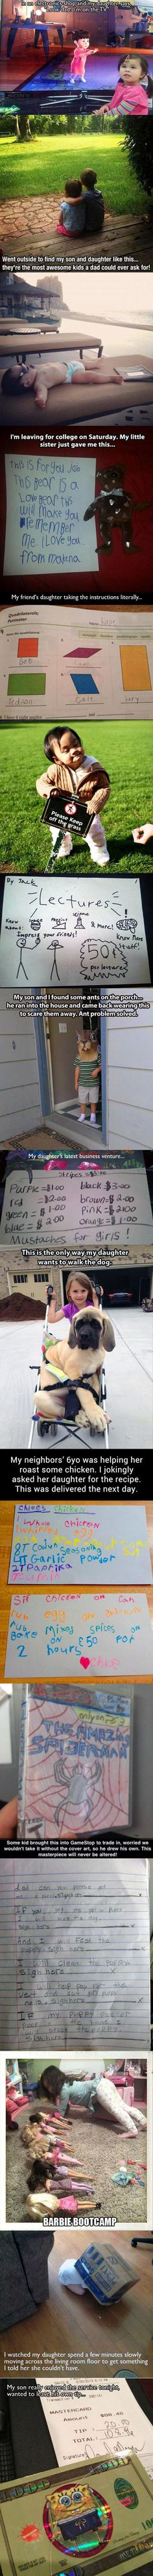 Kids are awesome.